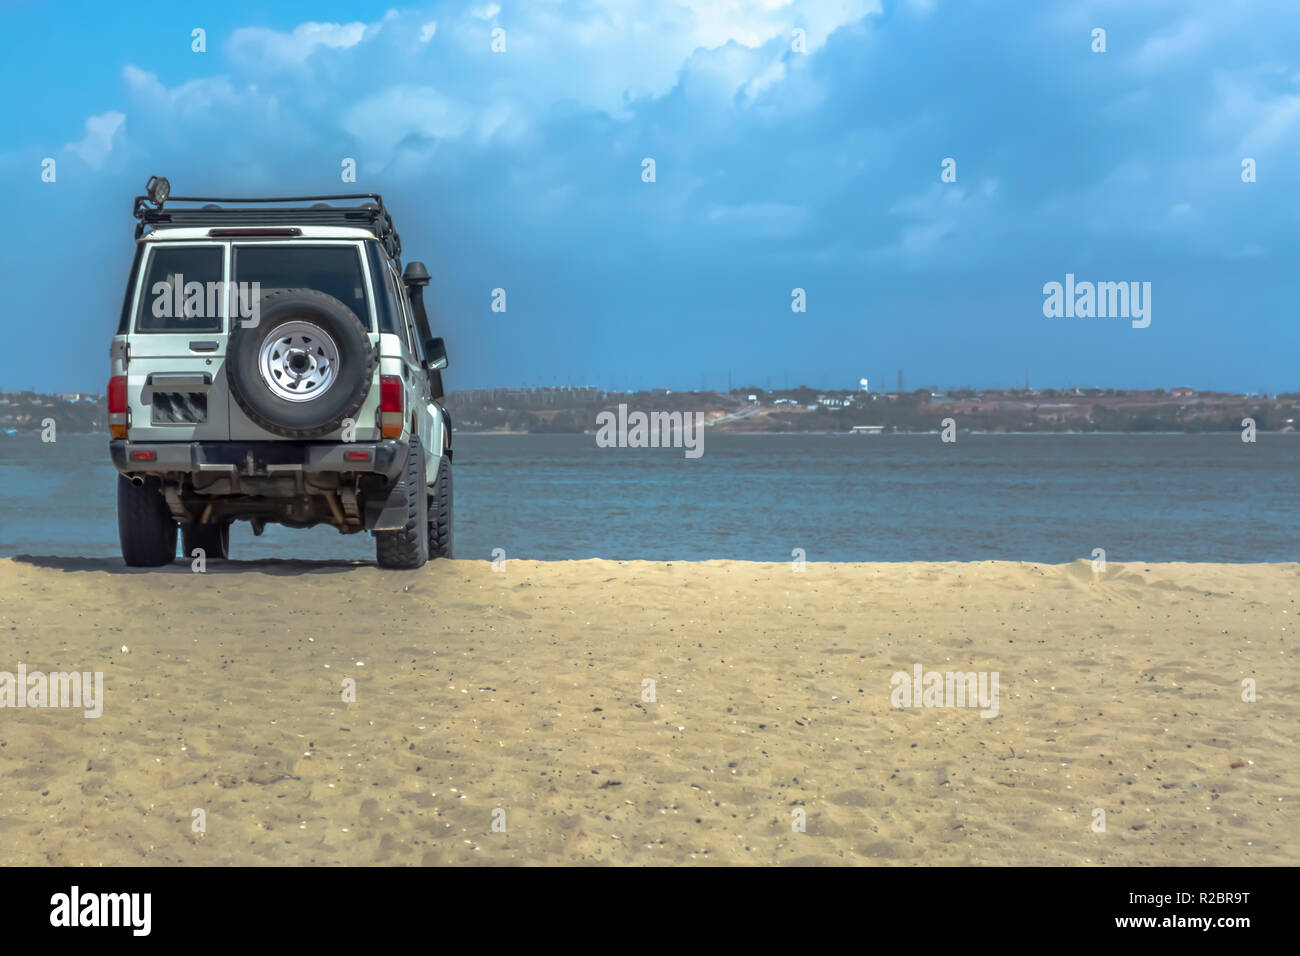 View of four-wheel drive vehicle, standing on the beach overlooking the sea, Mussulo Island, Angola - Stock Image